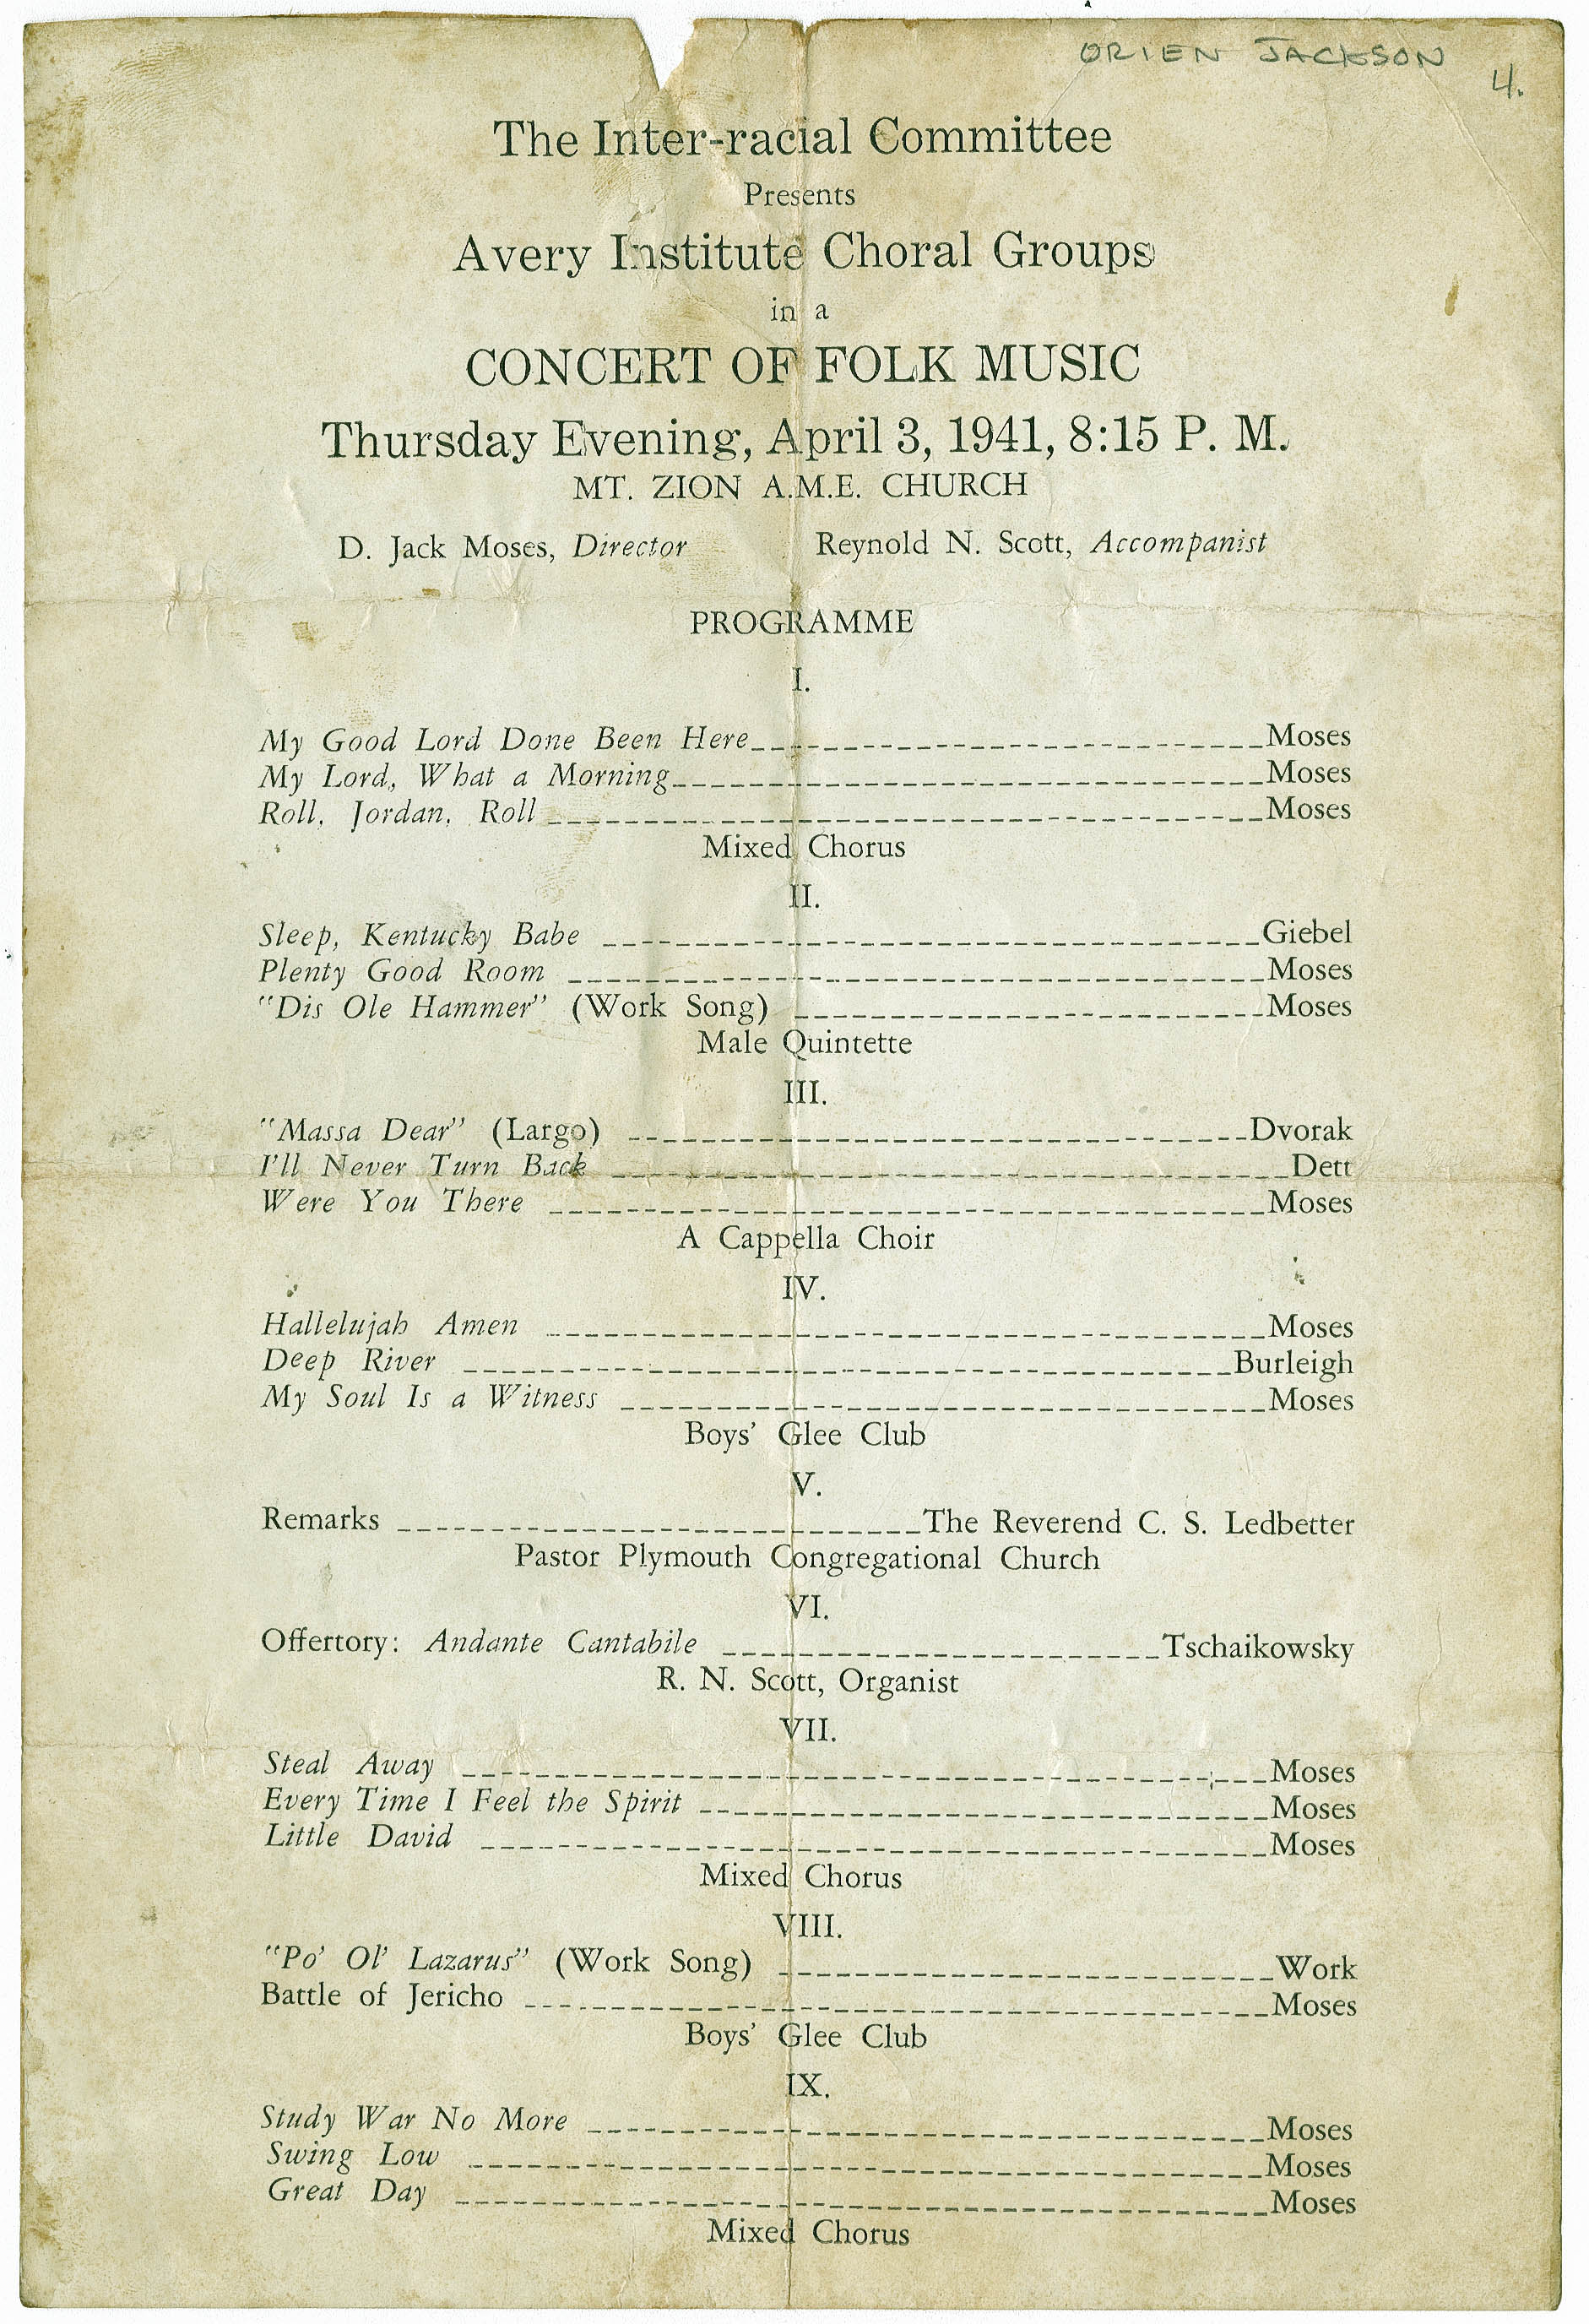 Program for folk music concert by the Avery Institute Choral Groups